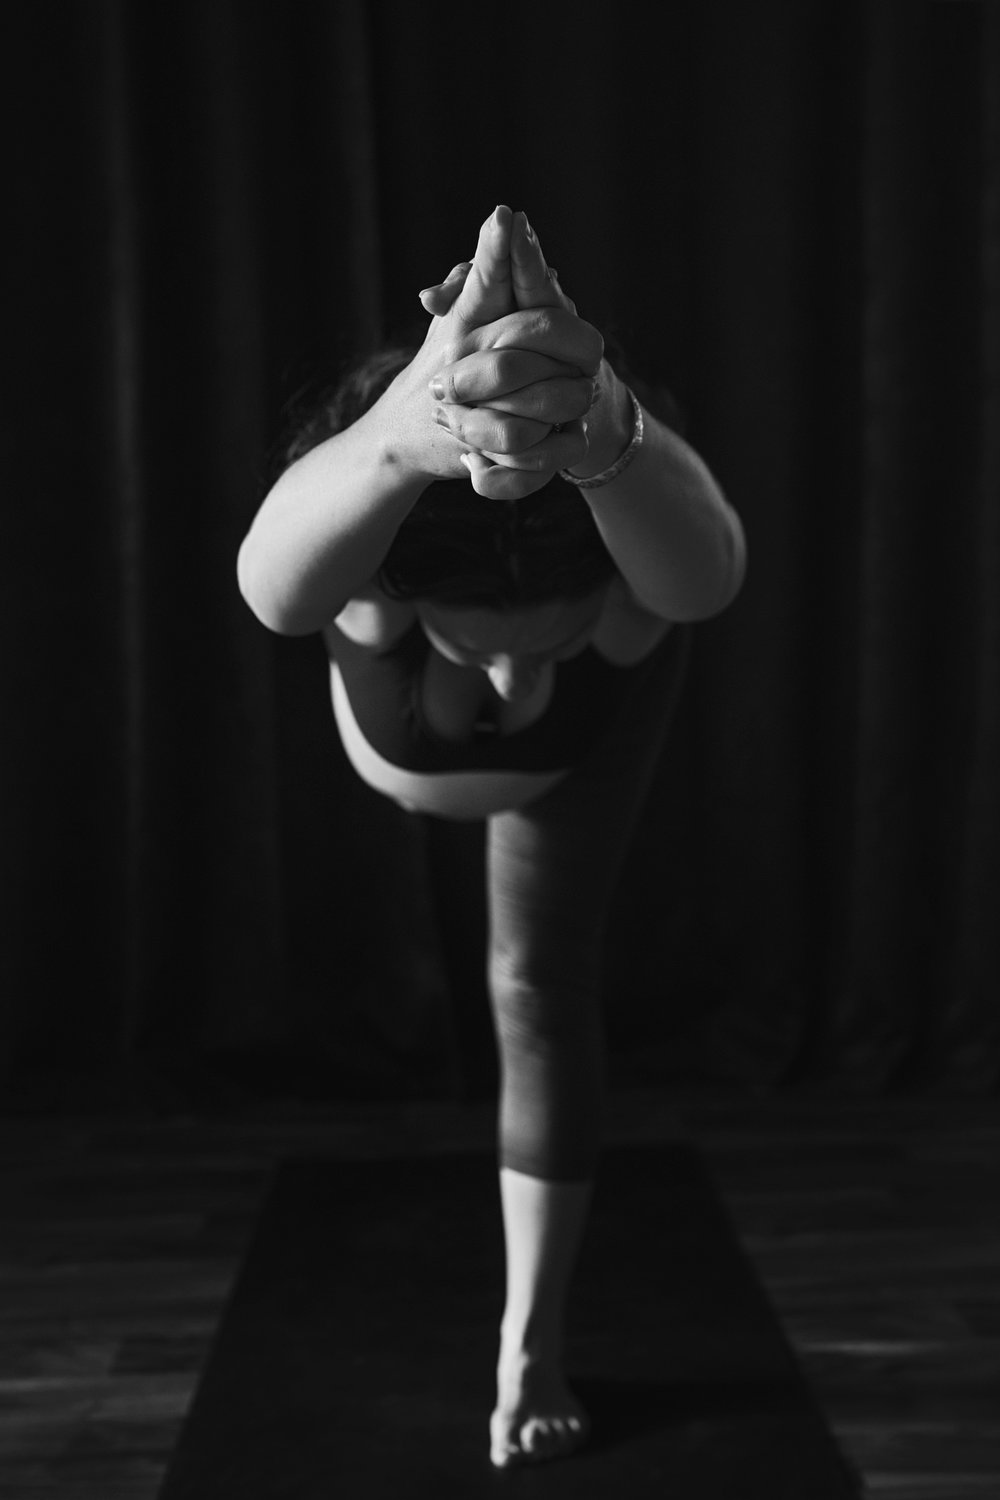 Richmond prenatal yoga meets a photographic study in the art of the female body while pregnant.